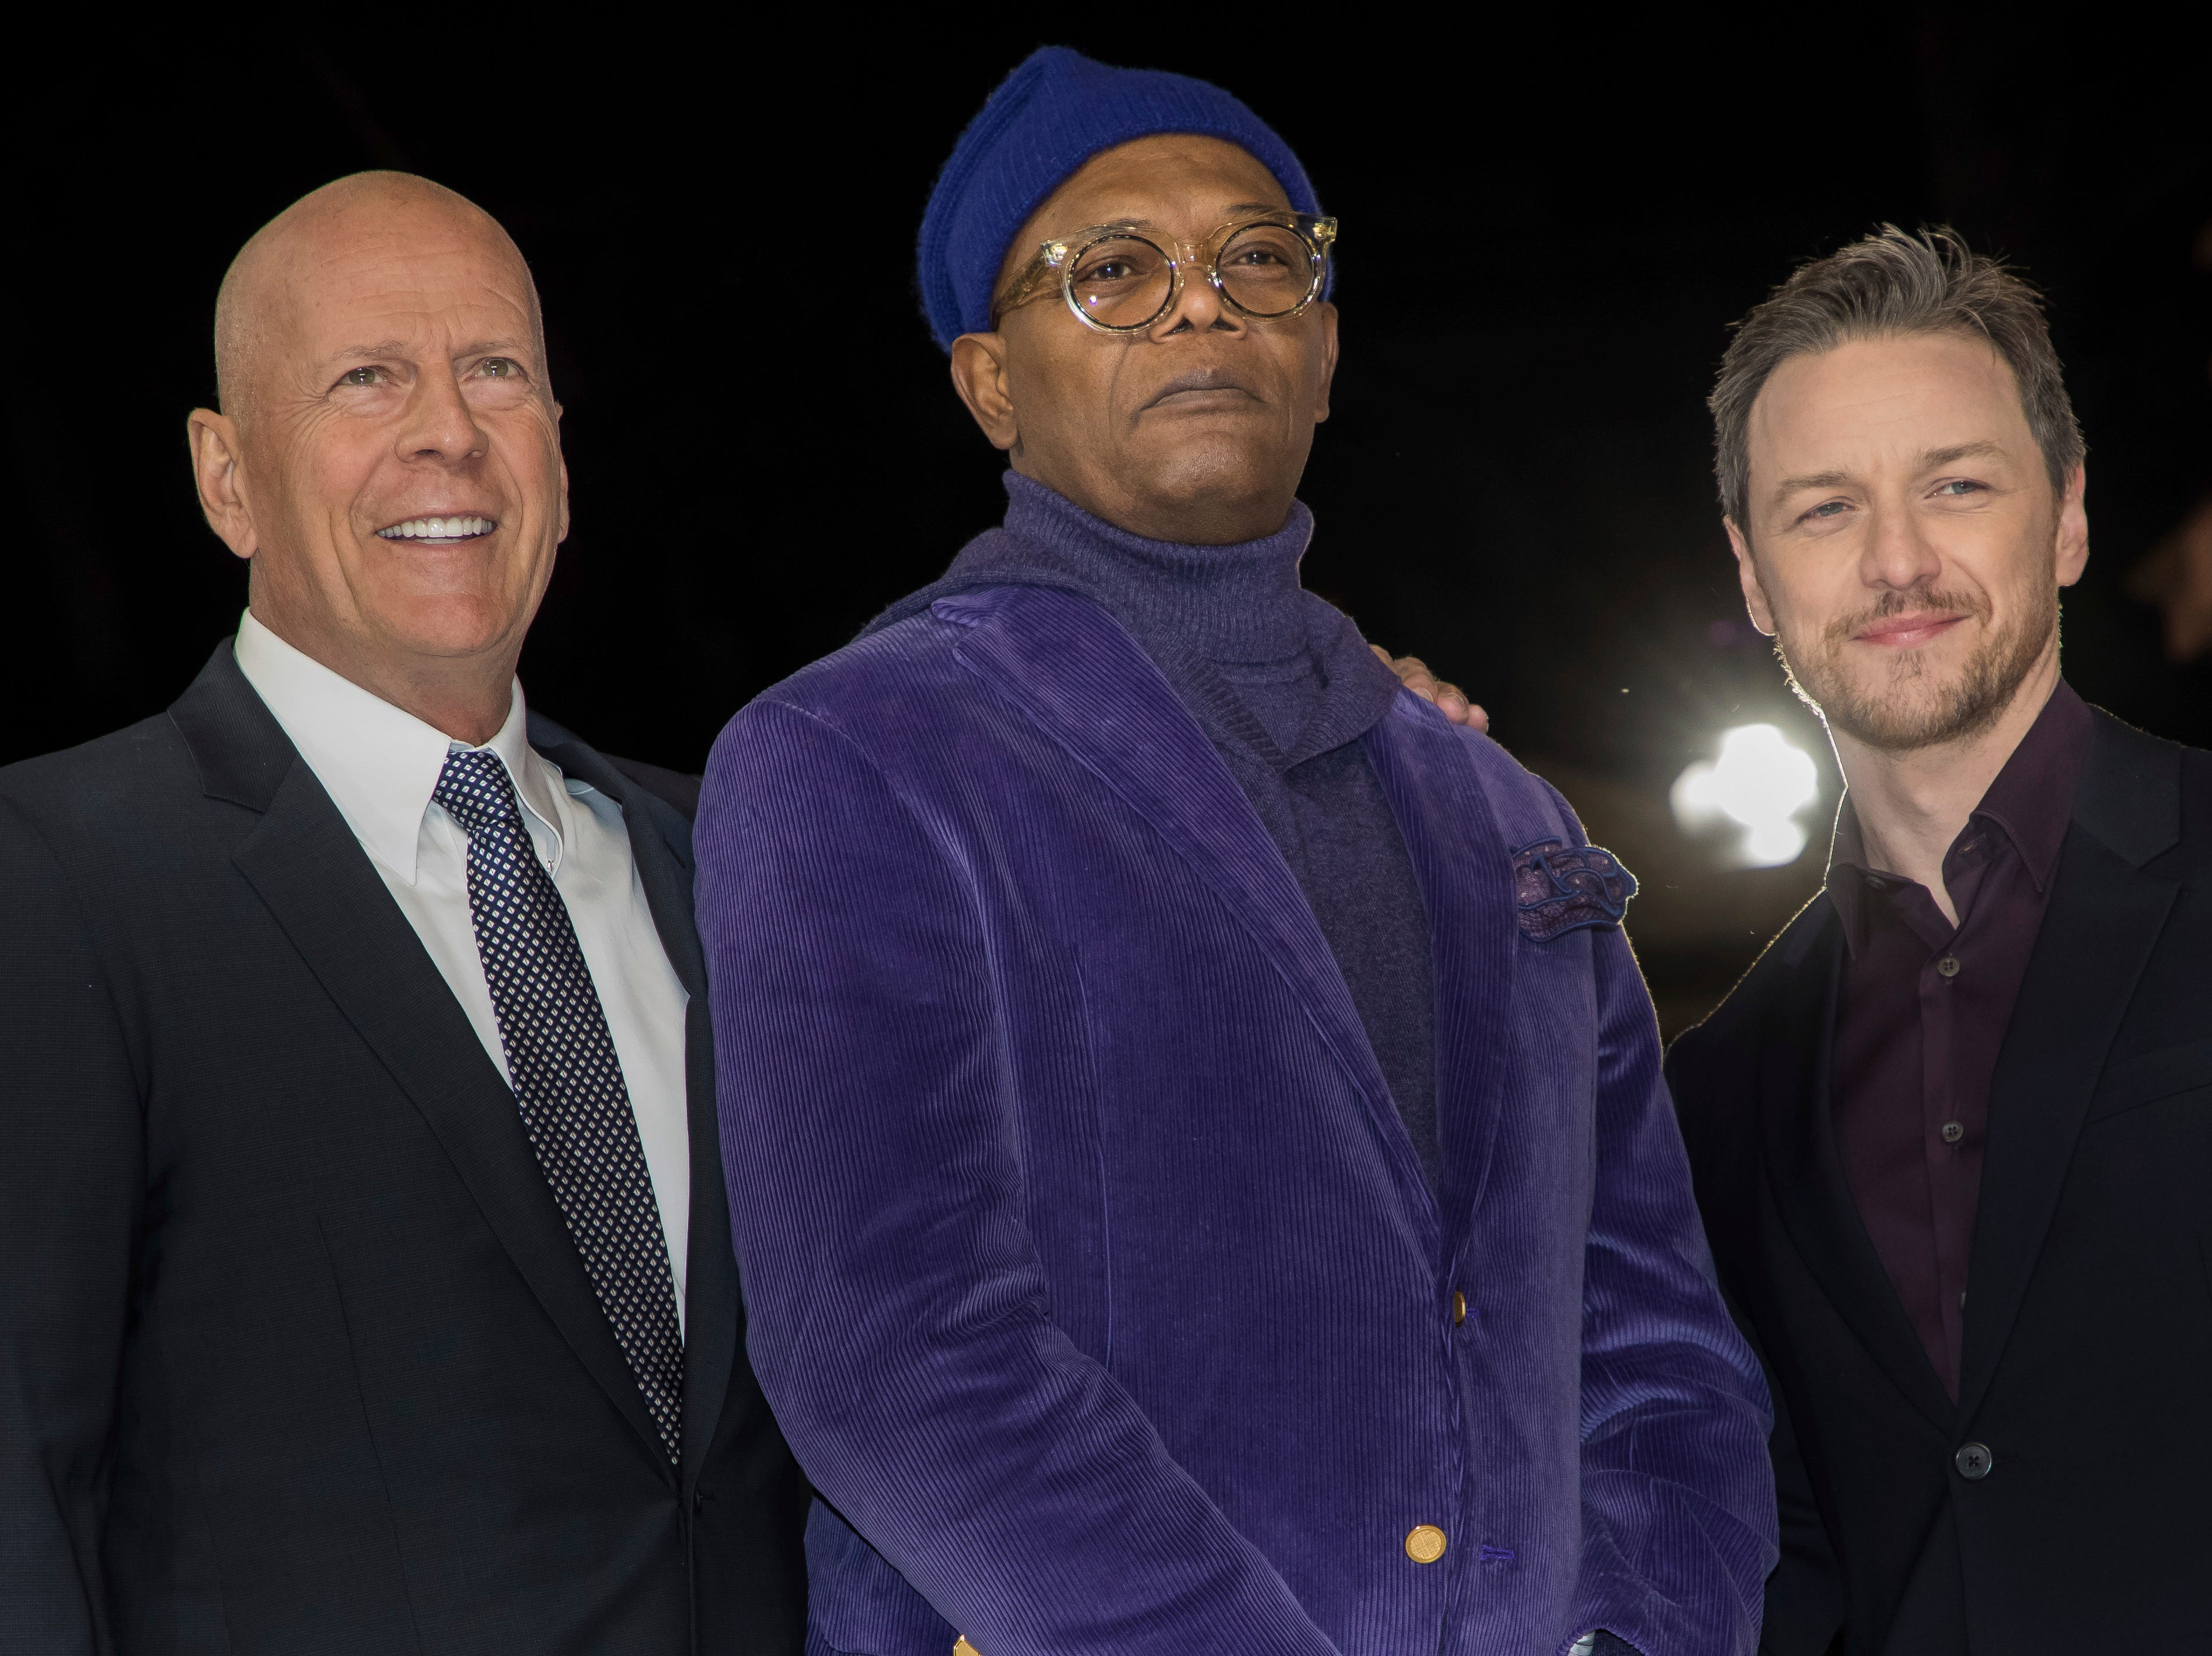 """Actors Bruce Willis, from left, Samuel L. Jackson and James McAvoy pose for photographers upon arrival at the premiere of the film """"Glass"""" in London on Wednesday, Jan. 9, 2019."""